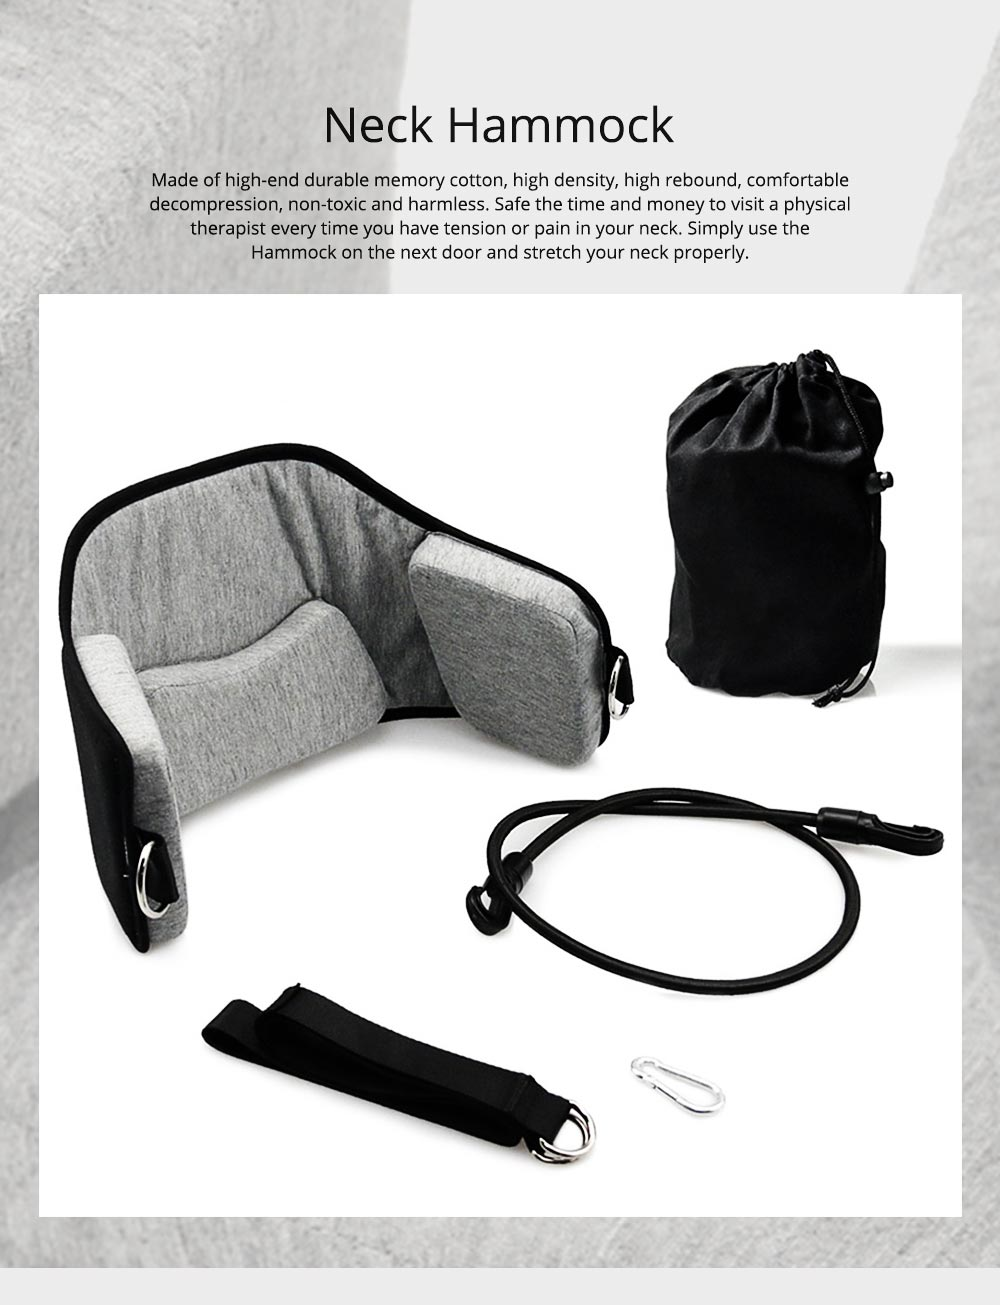 Neck Hammock Cervical Traction Device, Head Hammock for Neck Pain Relief for Office Workers, Drivers, Students, Teachers 0